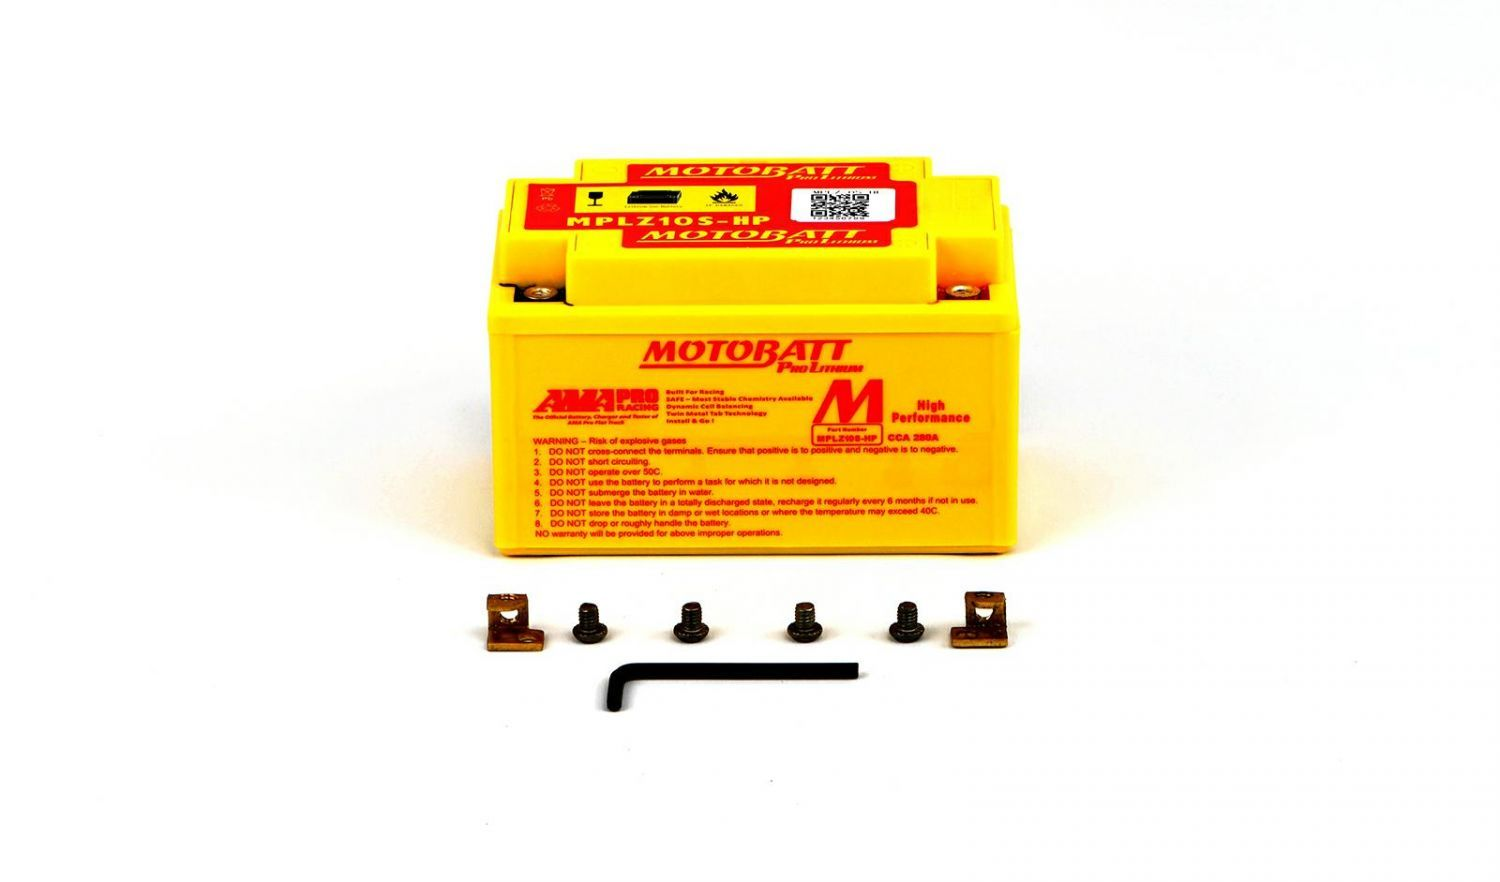 Motobatt Lithium Batteries - 501107MR image